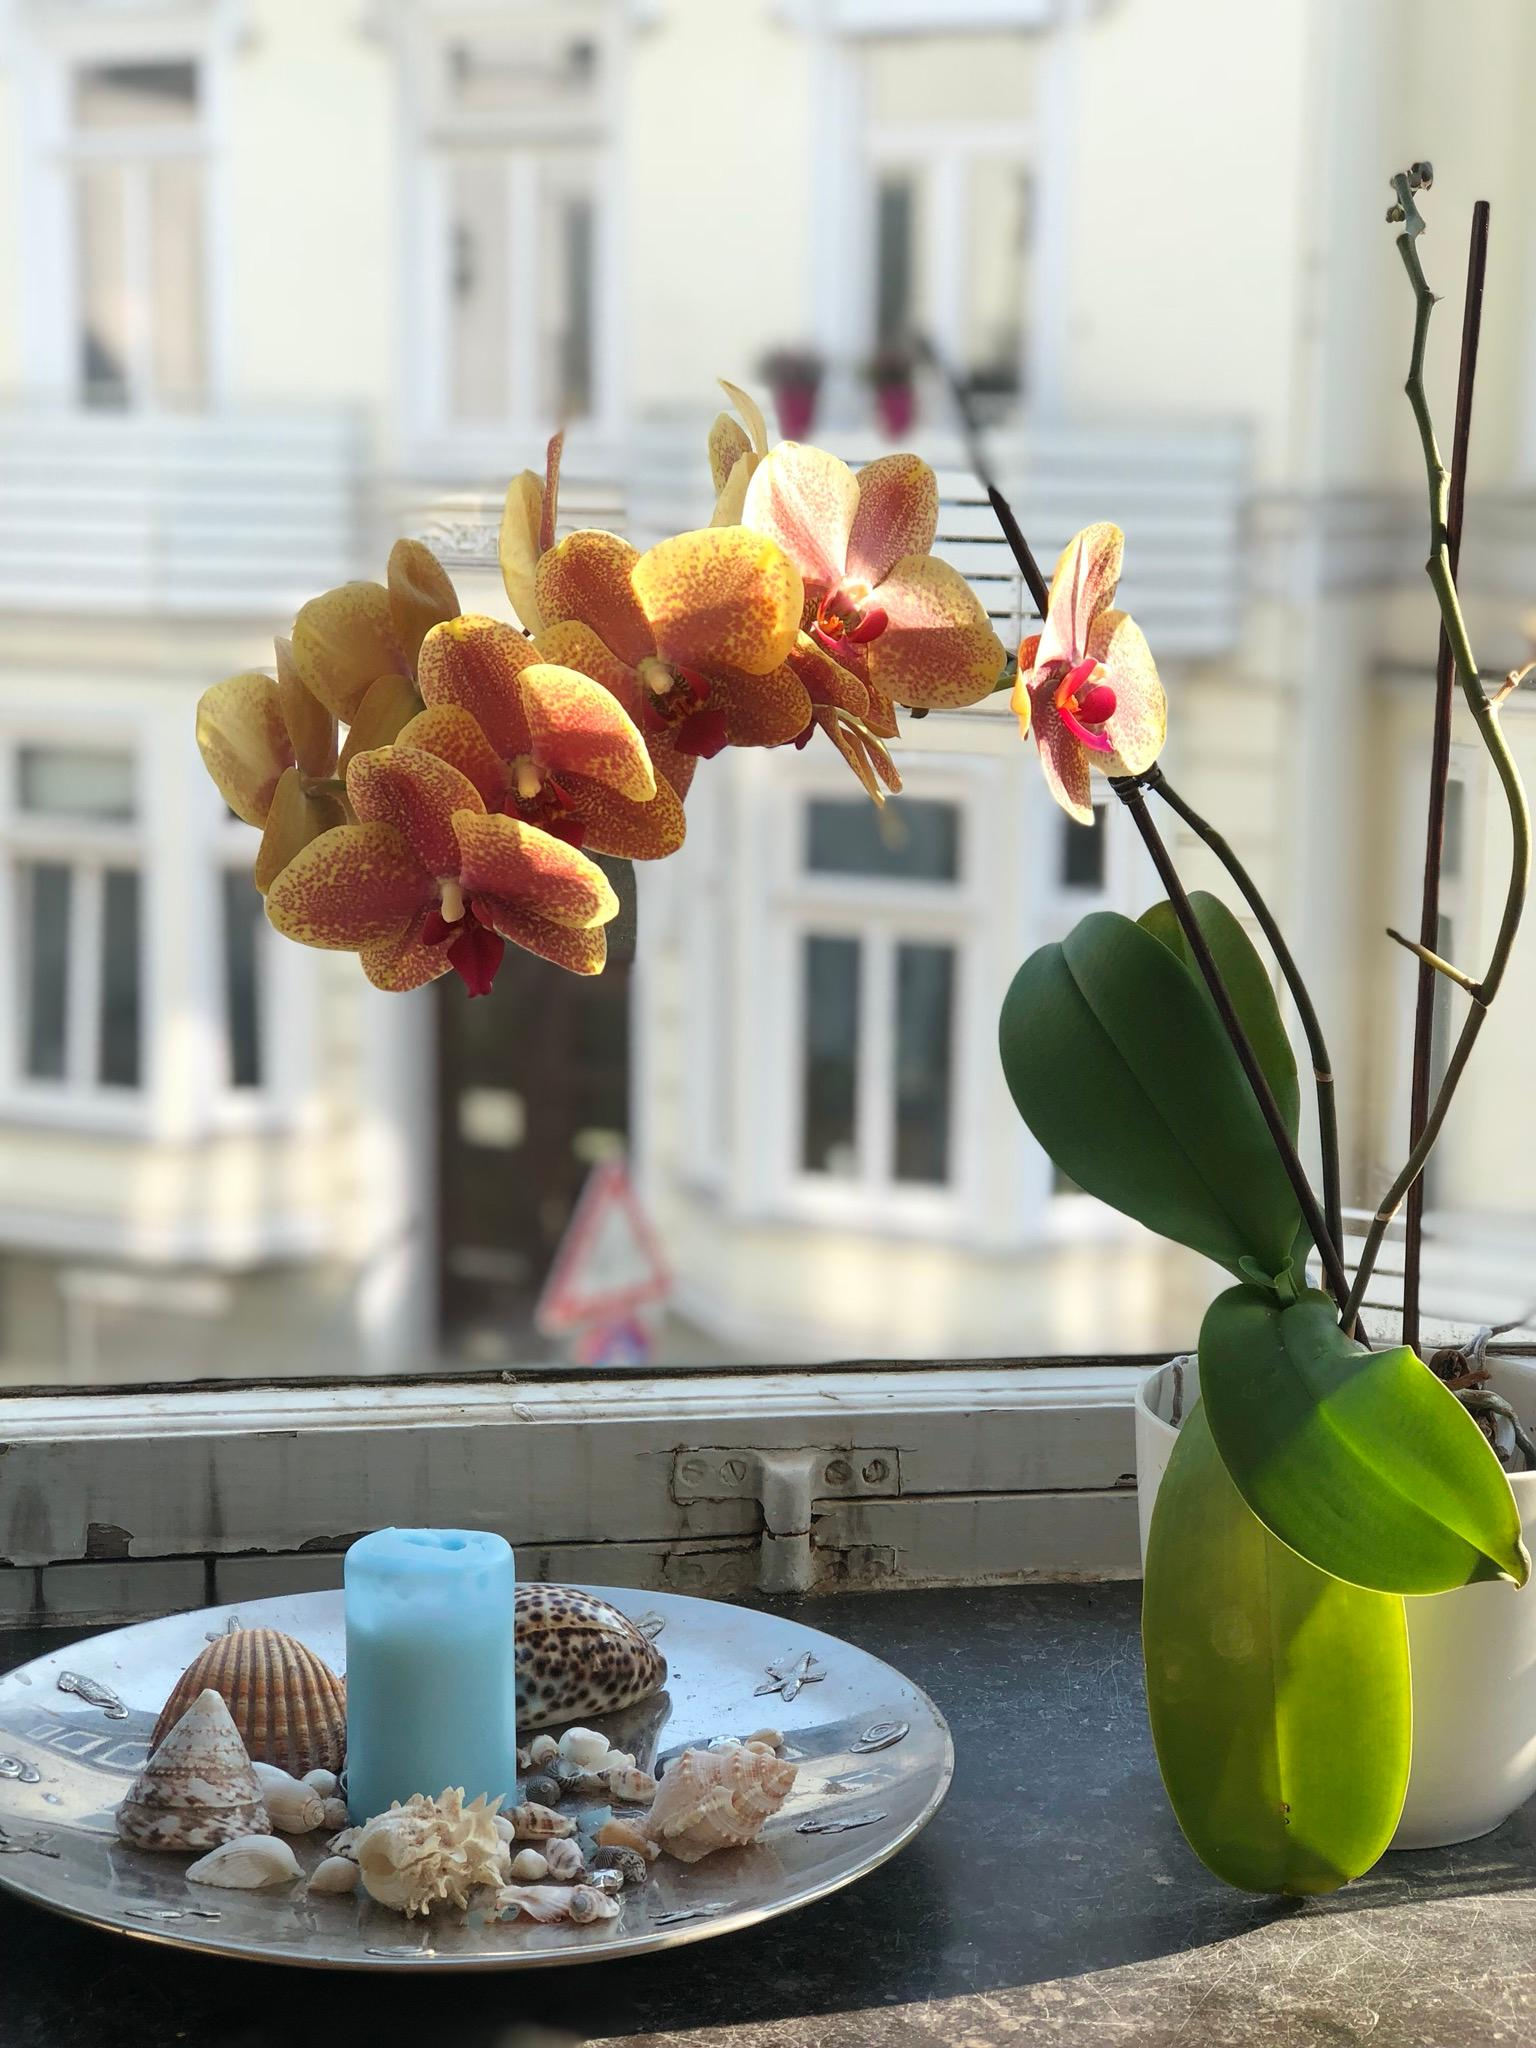 Stay Home 🌸 #view #home #vondirinpririert #flower